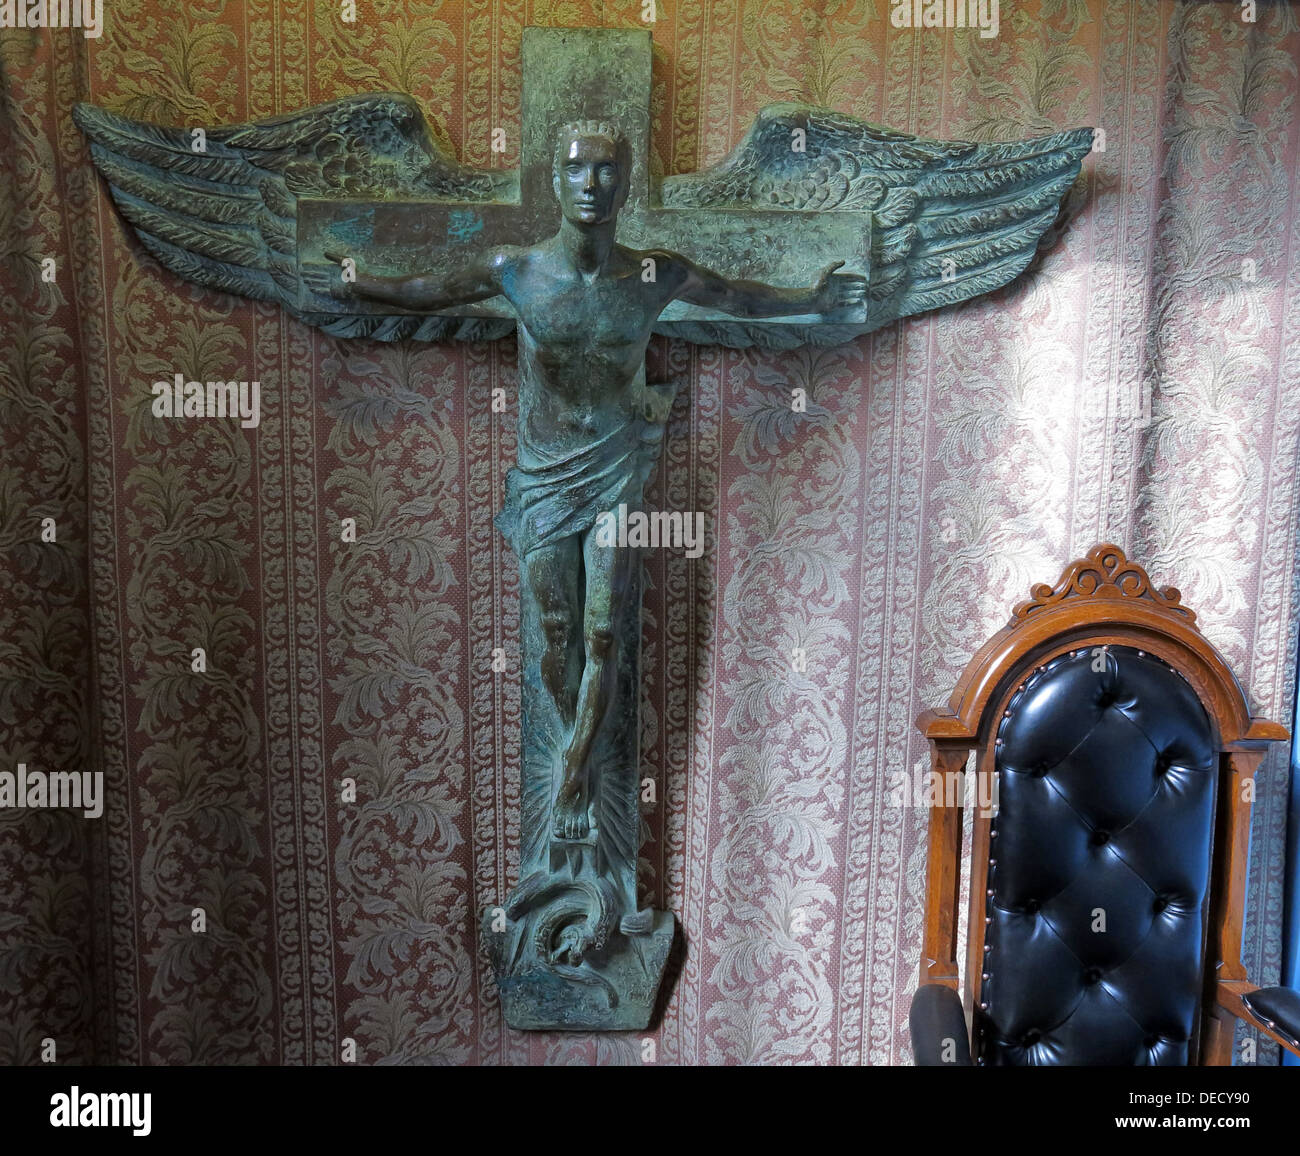 Church,Kirk,Art,Canon Gate,Cross,religion,religious,detail,Old Town,Old,Town,Bronze Crucifix,Bronze,Crucifix,Art,interior,inside,Canongate Kirk,Edinburgh Old Town,153 Canongate,Edinburgh,Midlothian,EH8 8BN,EH88BN,GoTonySmith,Buy Pictures of,Buy Images Of